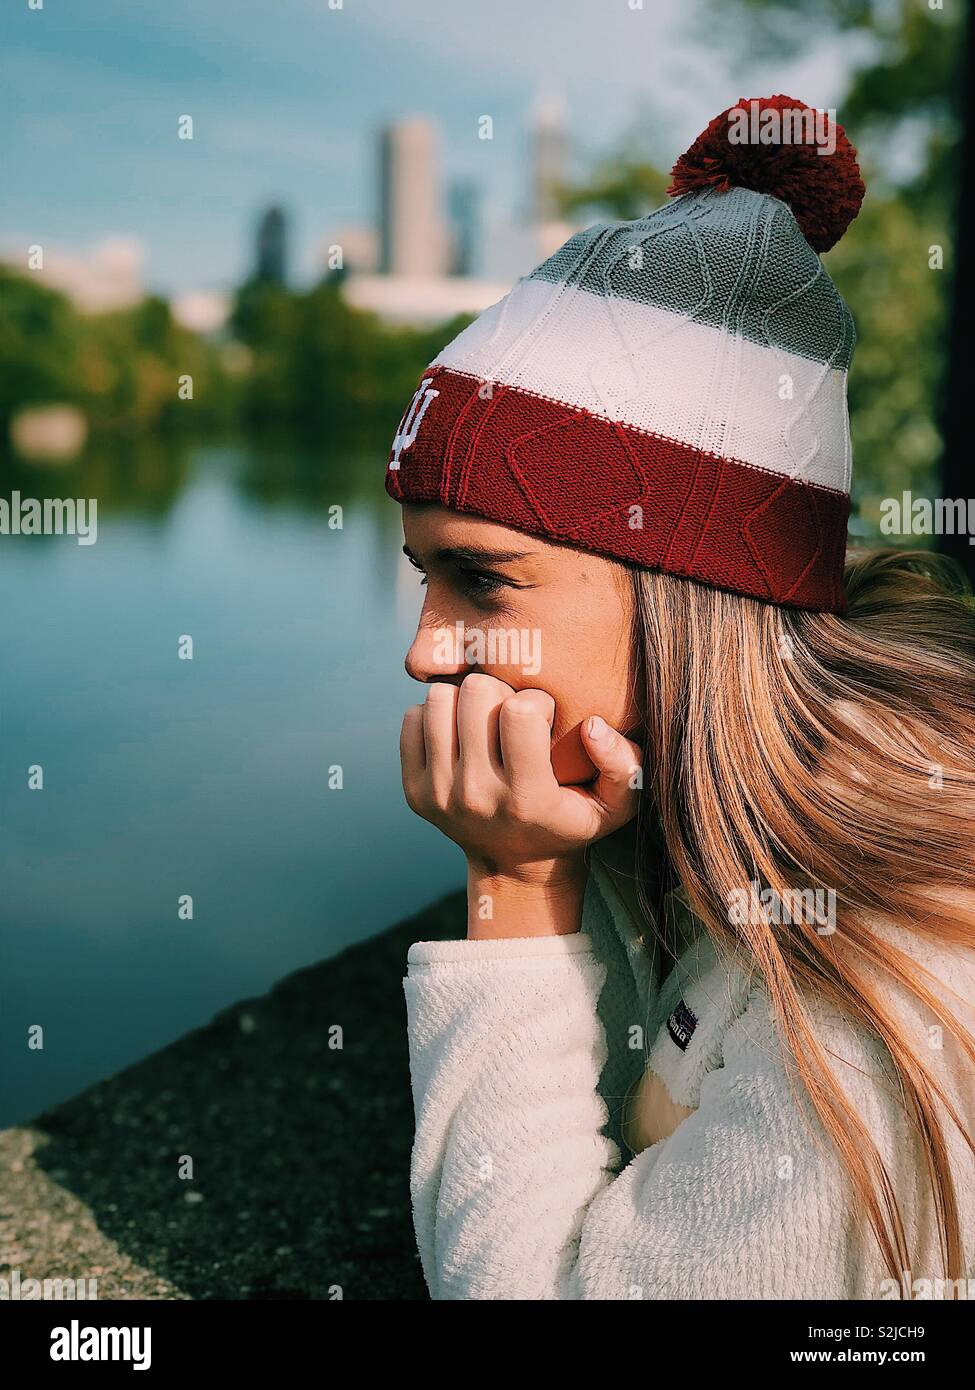 this is me - Stock Image